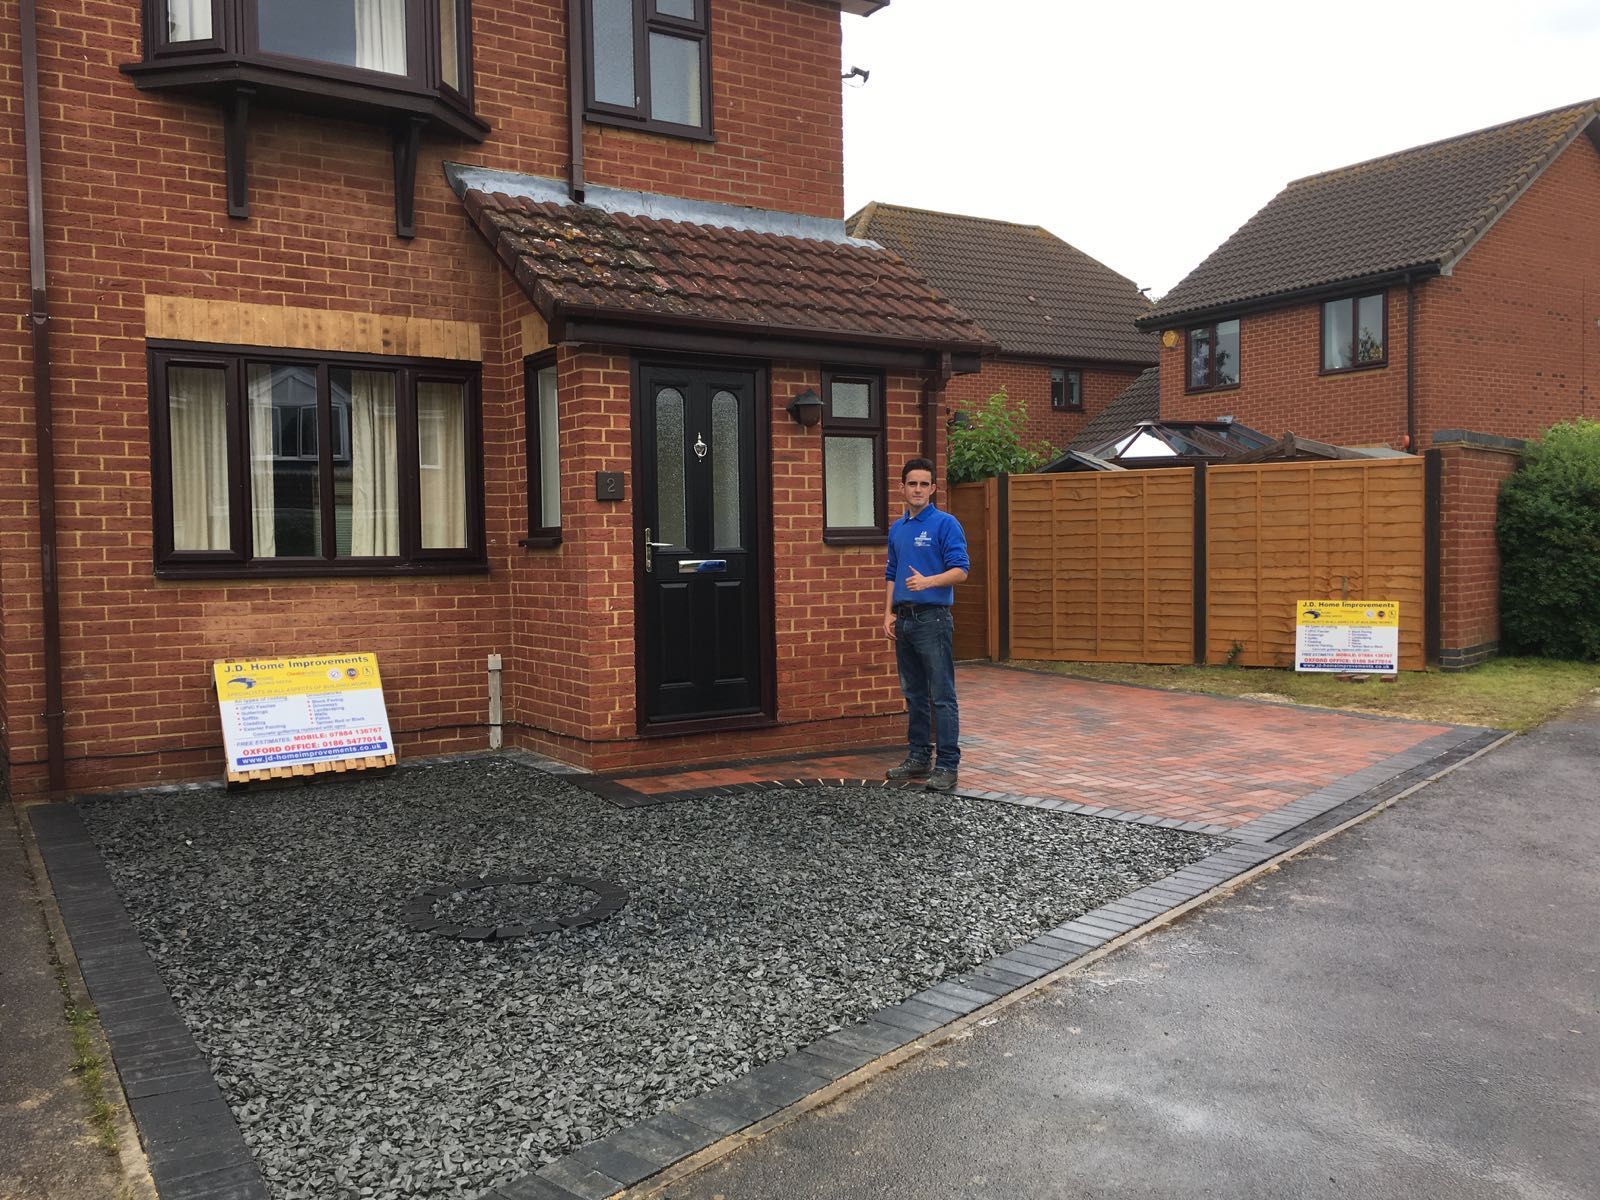 recent project for driveways in Clifton - image shows a block paving driveway